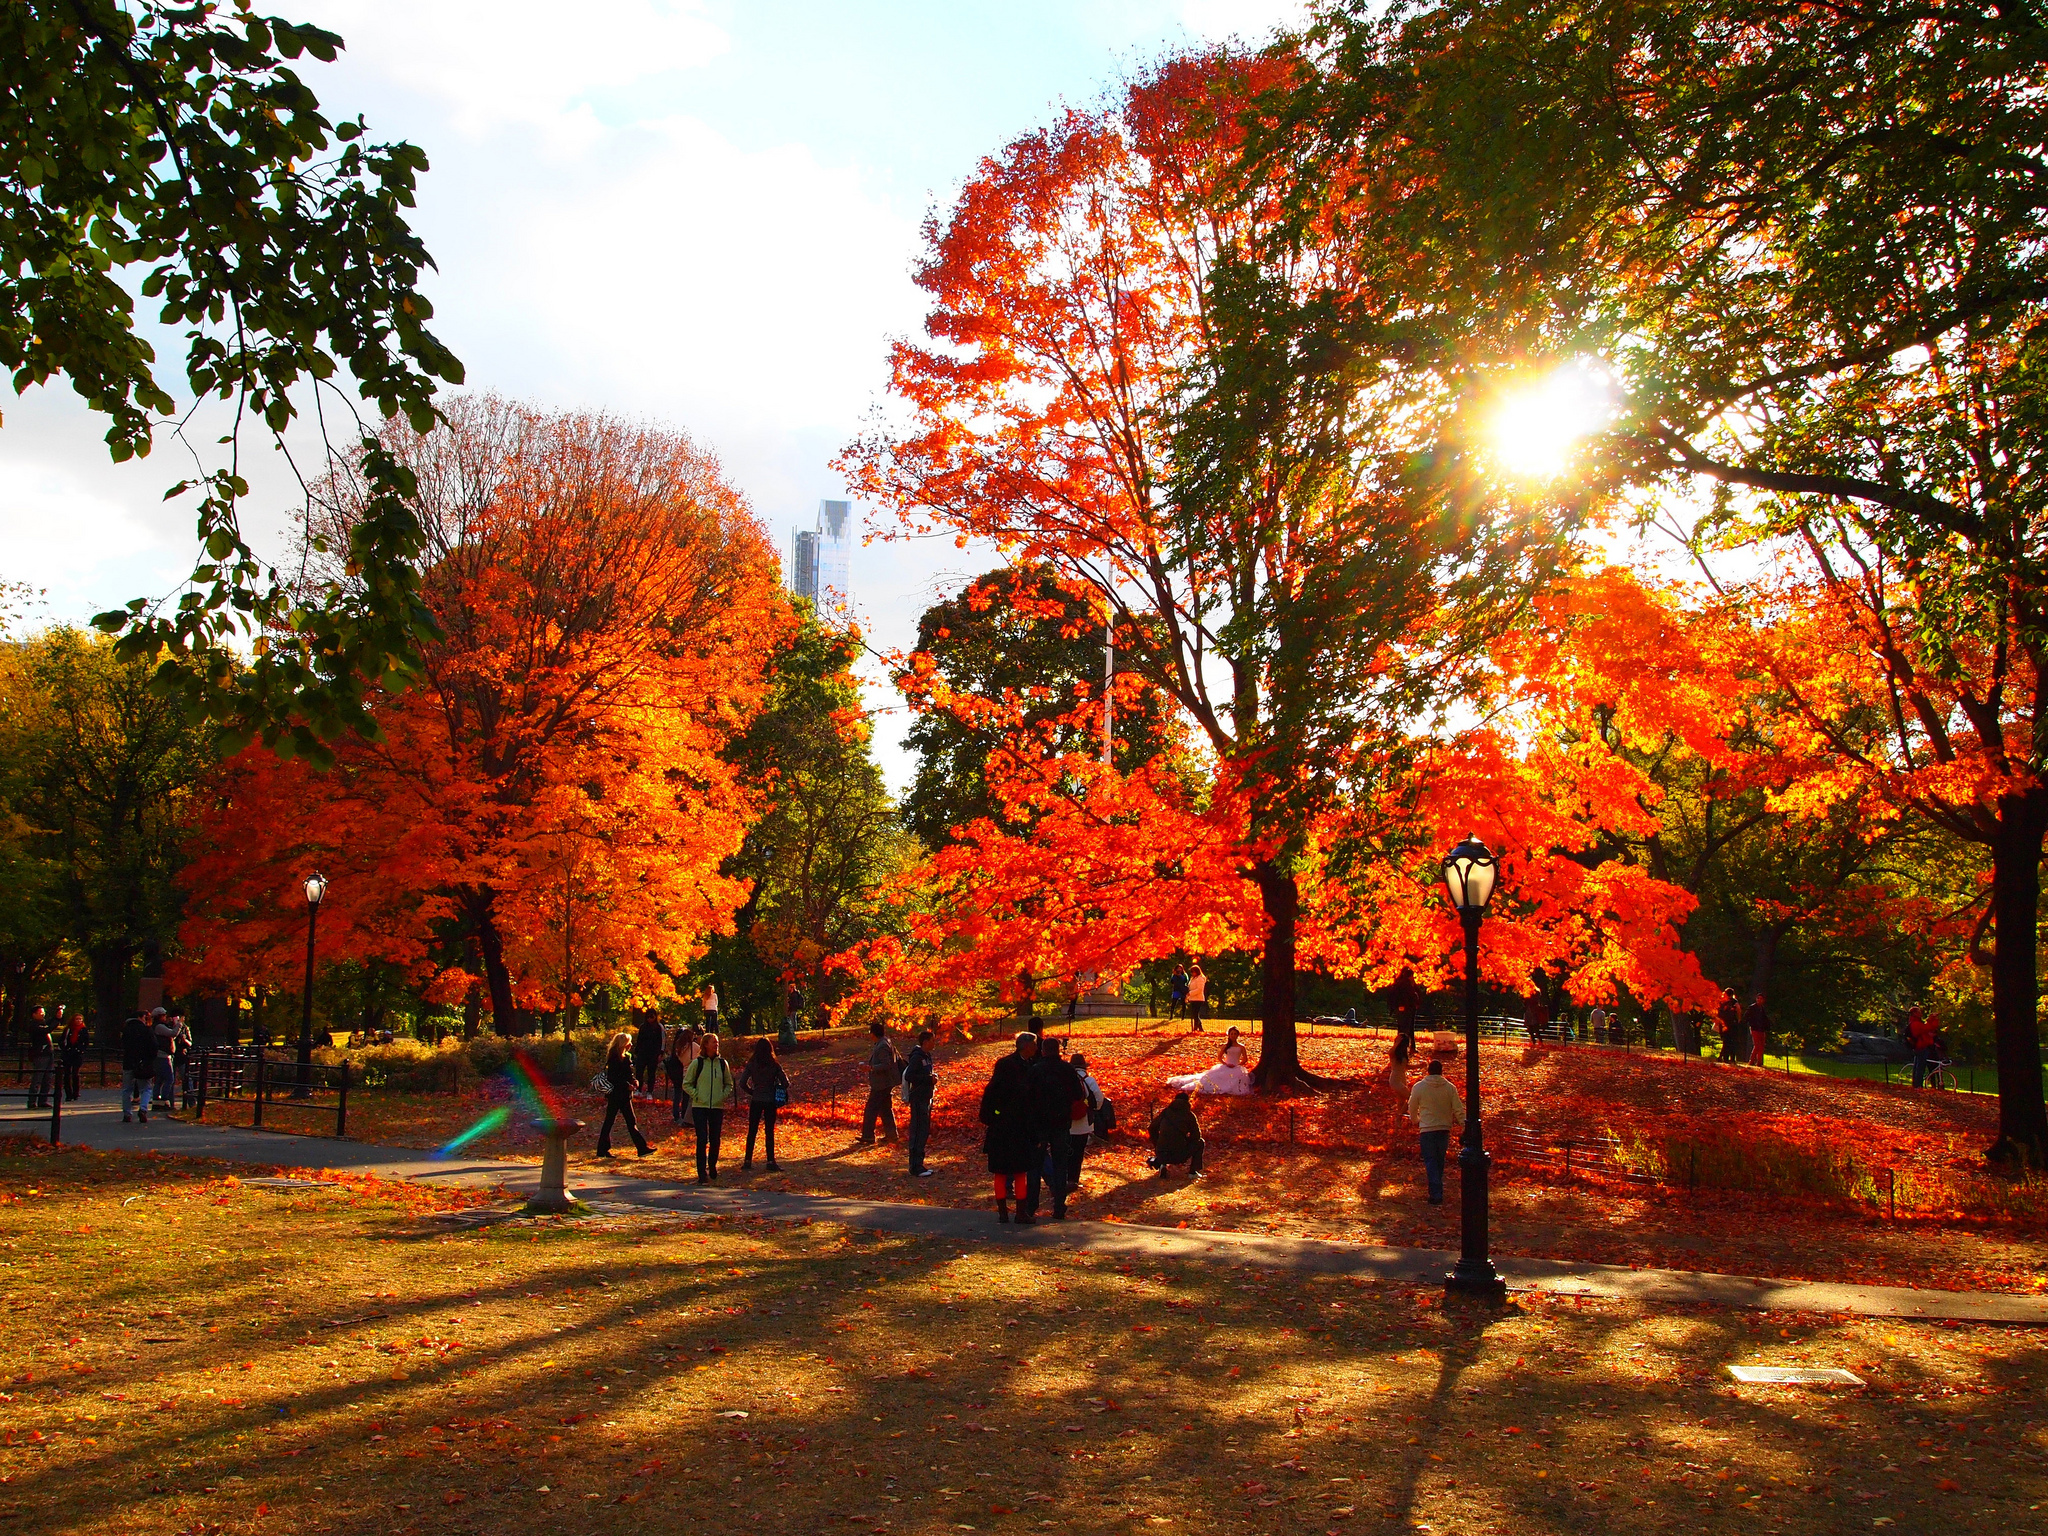 17 Reasons New York City Parents Hate Fall